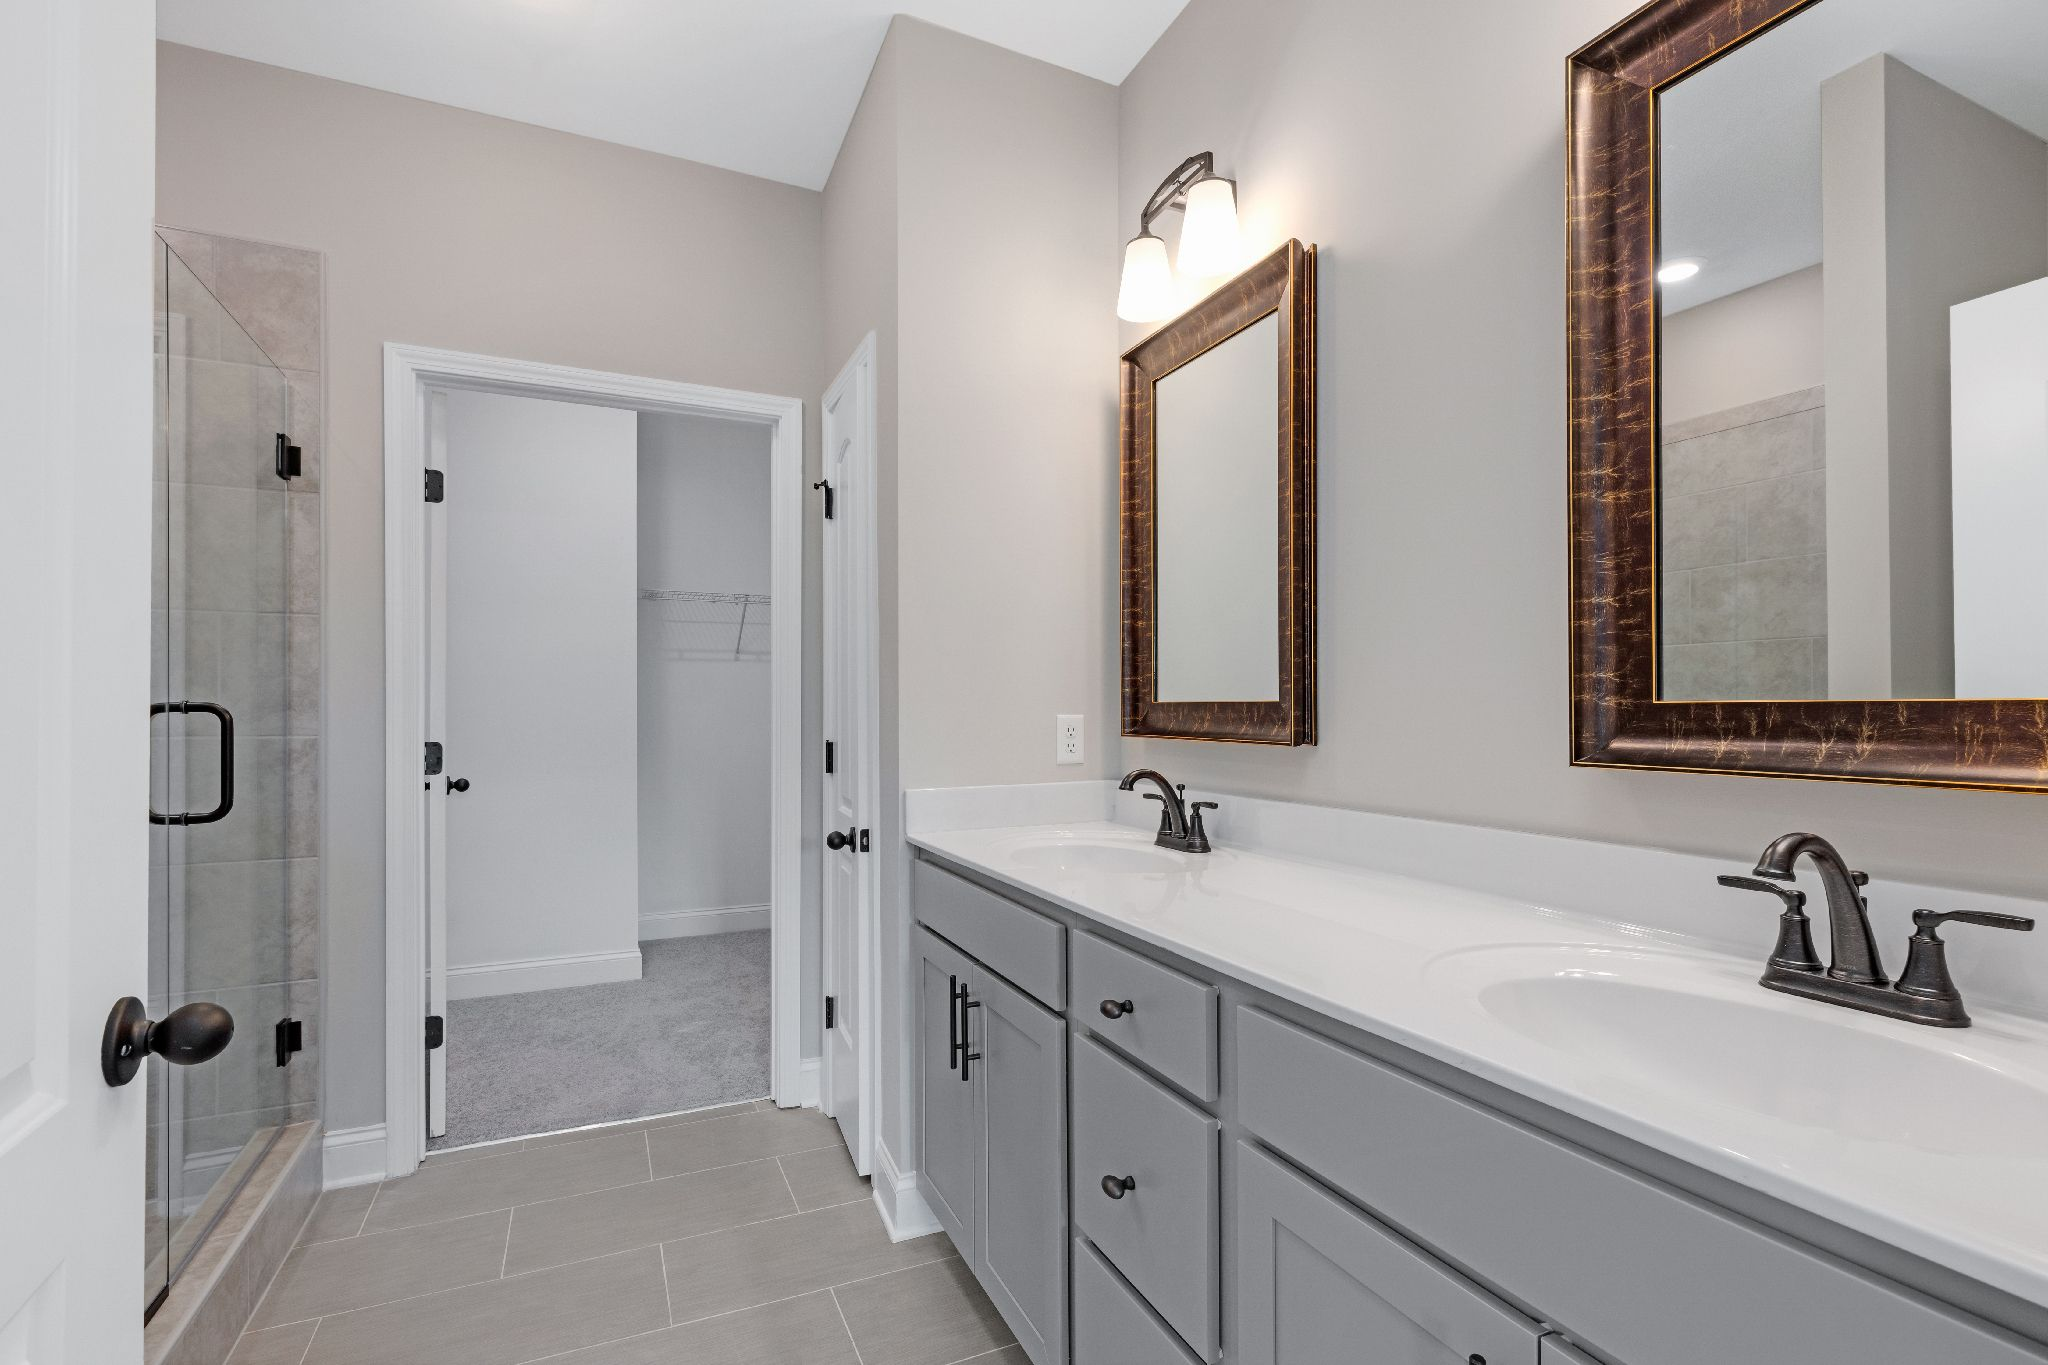 Bathroom featured in The Ashleigh Courtyard Cottage By Goodall Homes in Chattanooga, GA